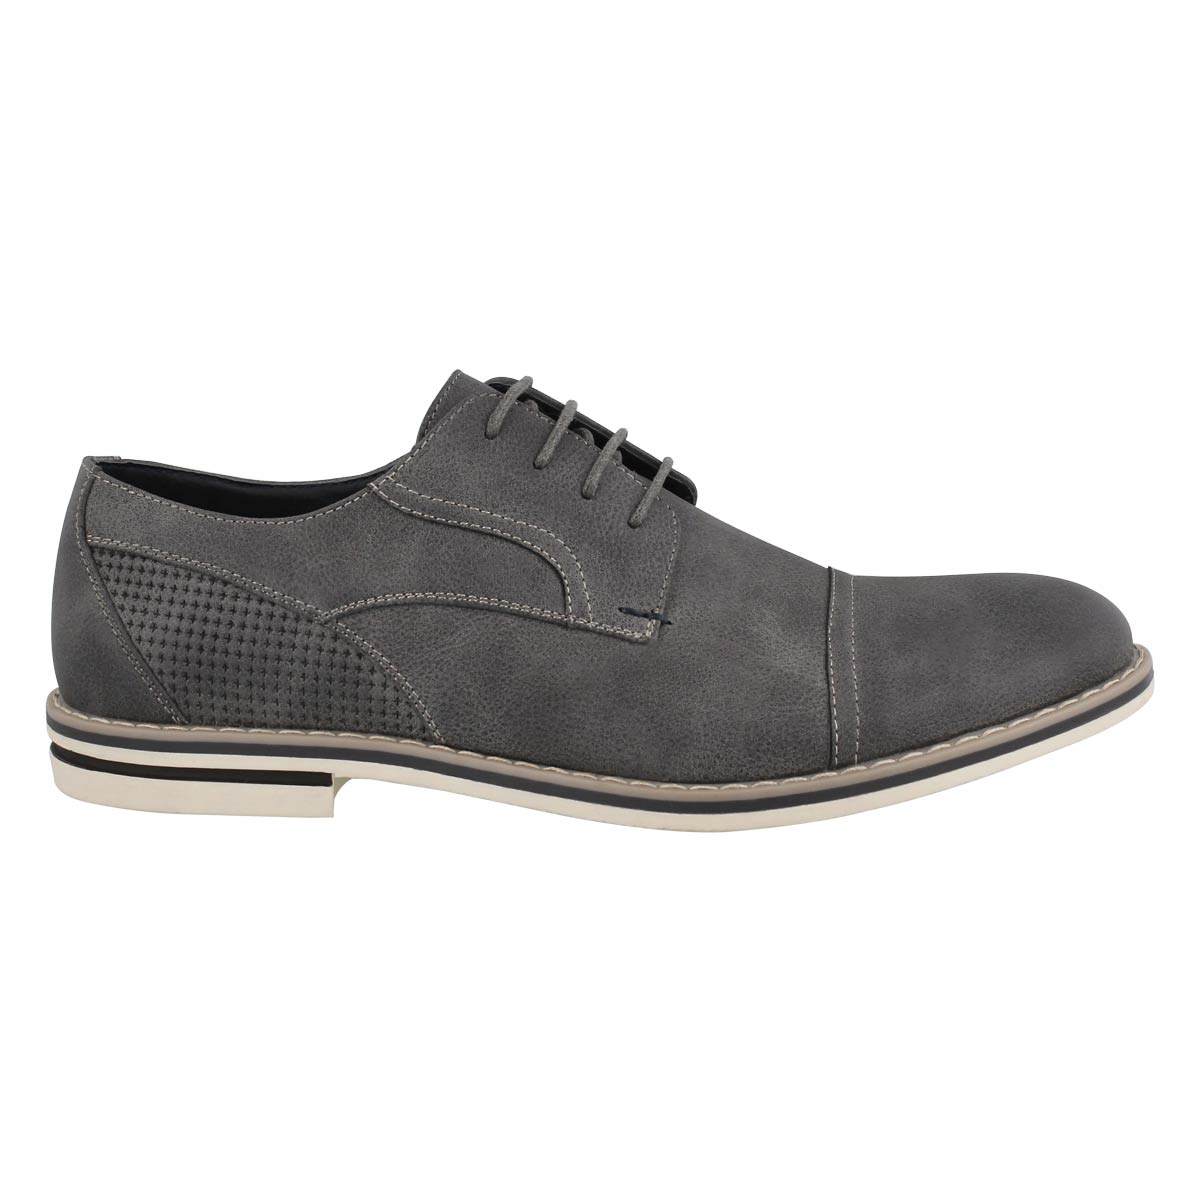 Mns Jack grey lace up casual oxford